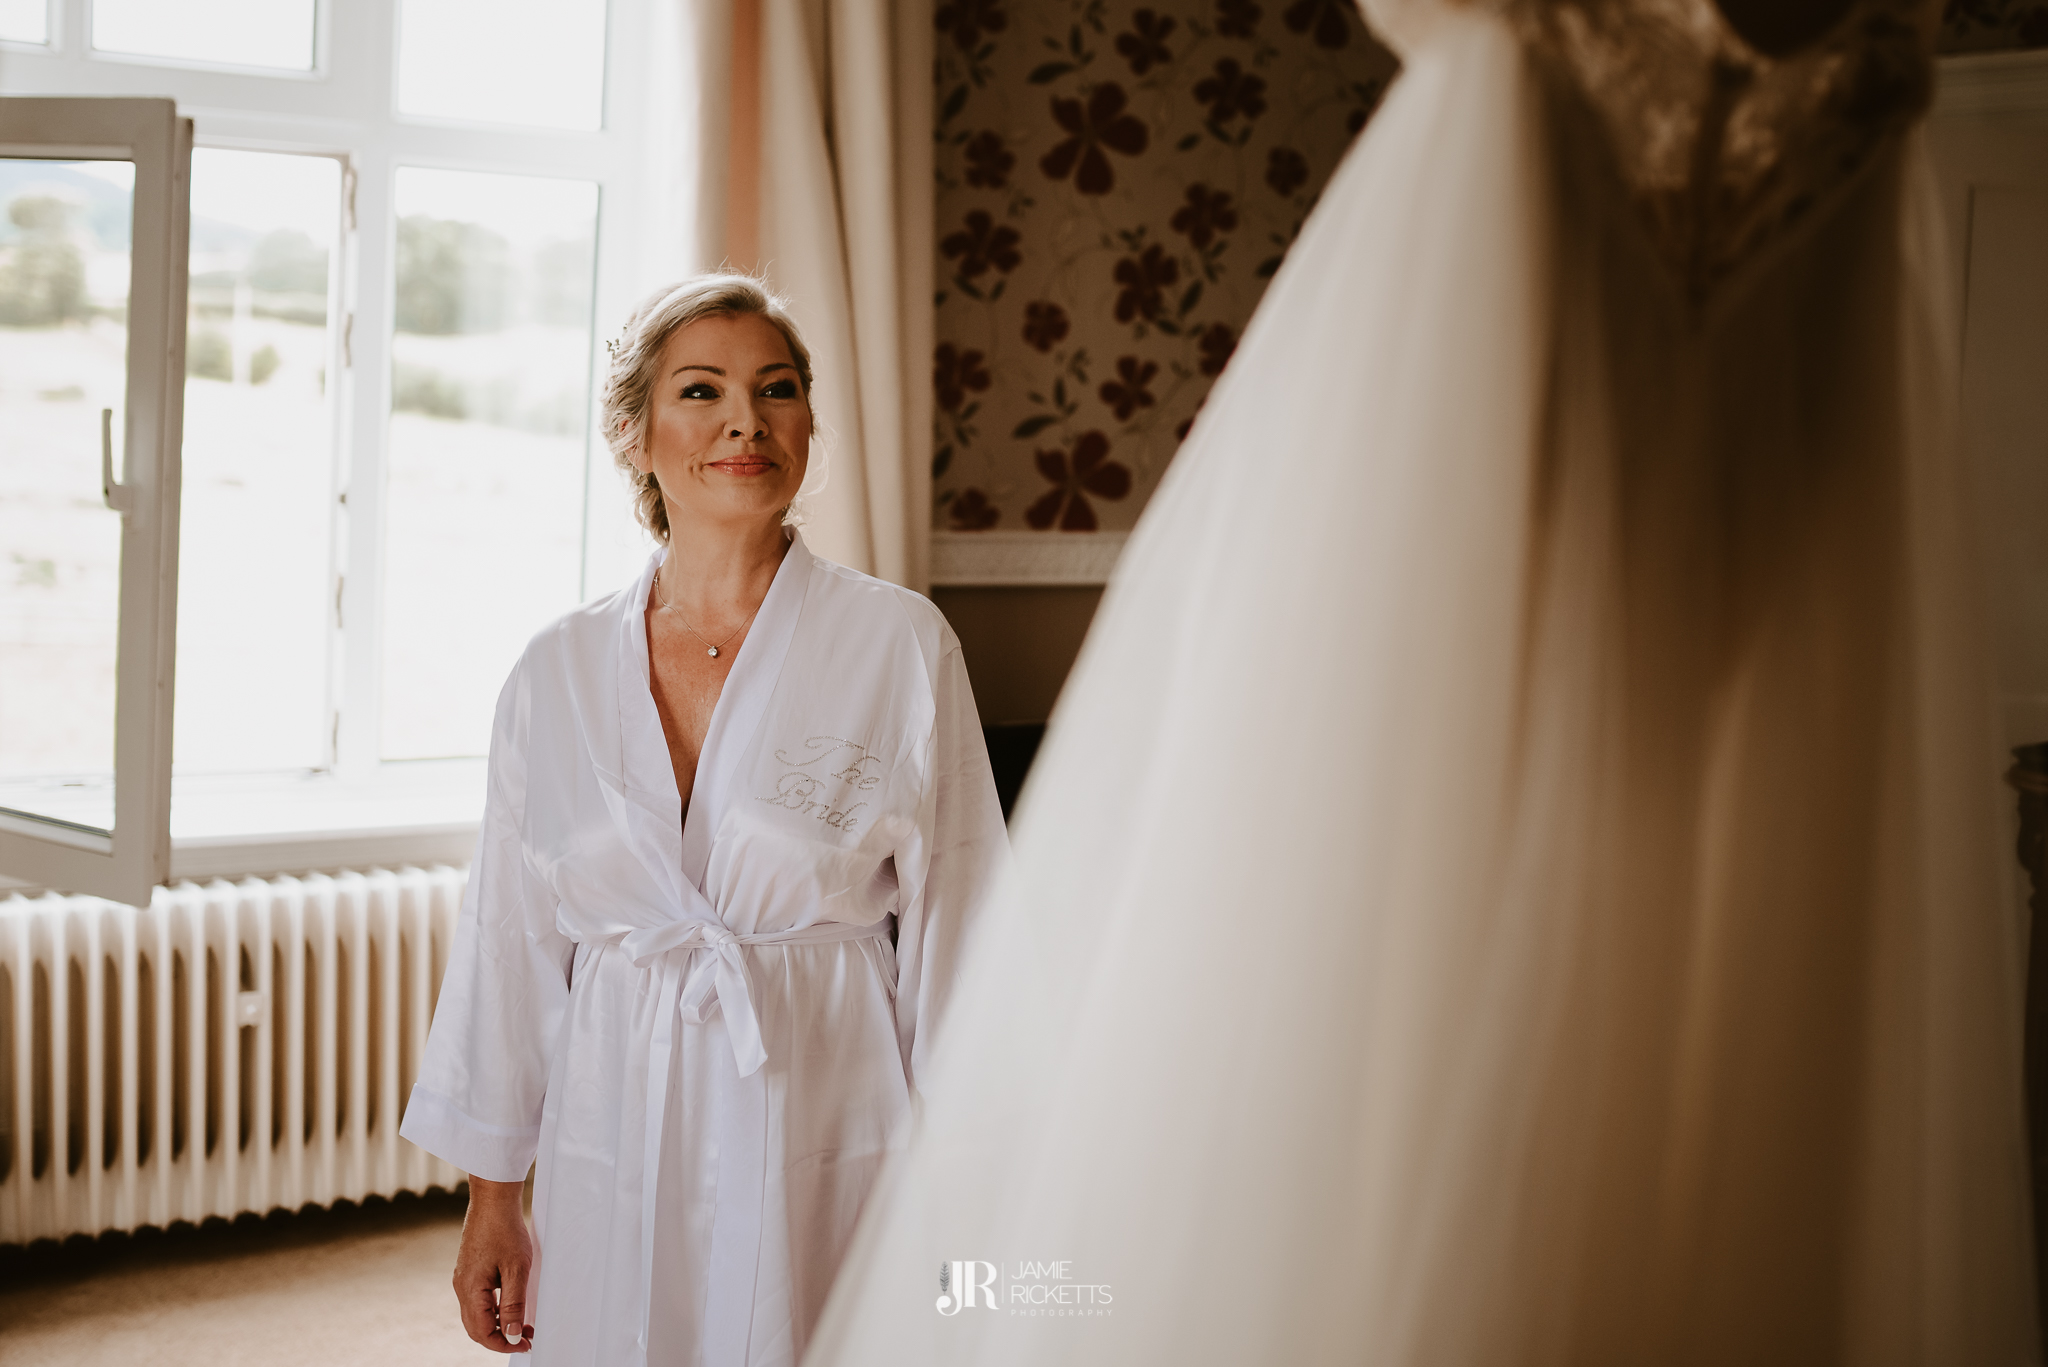 Wroxeter-Hotel-Wedding-Photography-In-Shropshire-By-Shropshire-Wedding-Photographer-Jamie-Ricketts-030.JPG